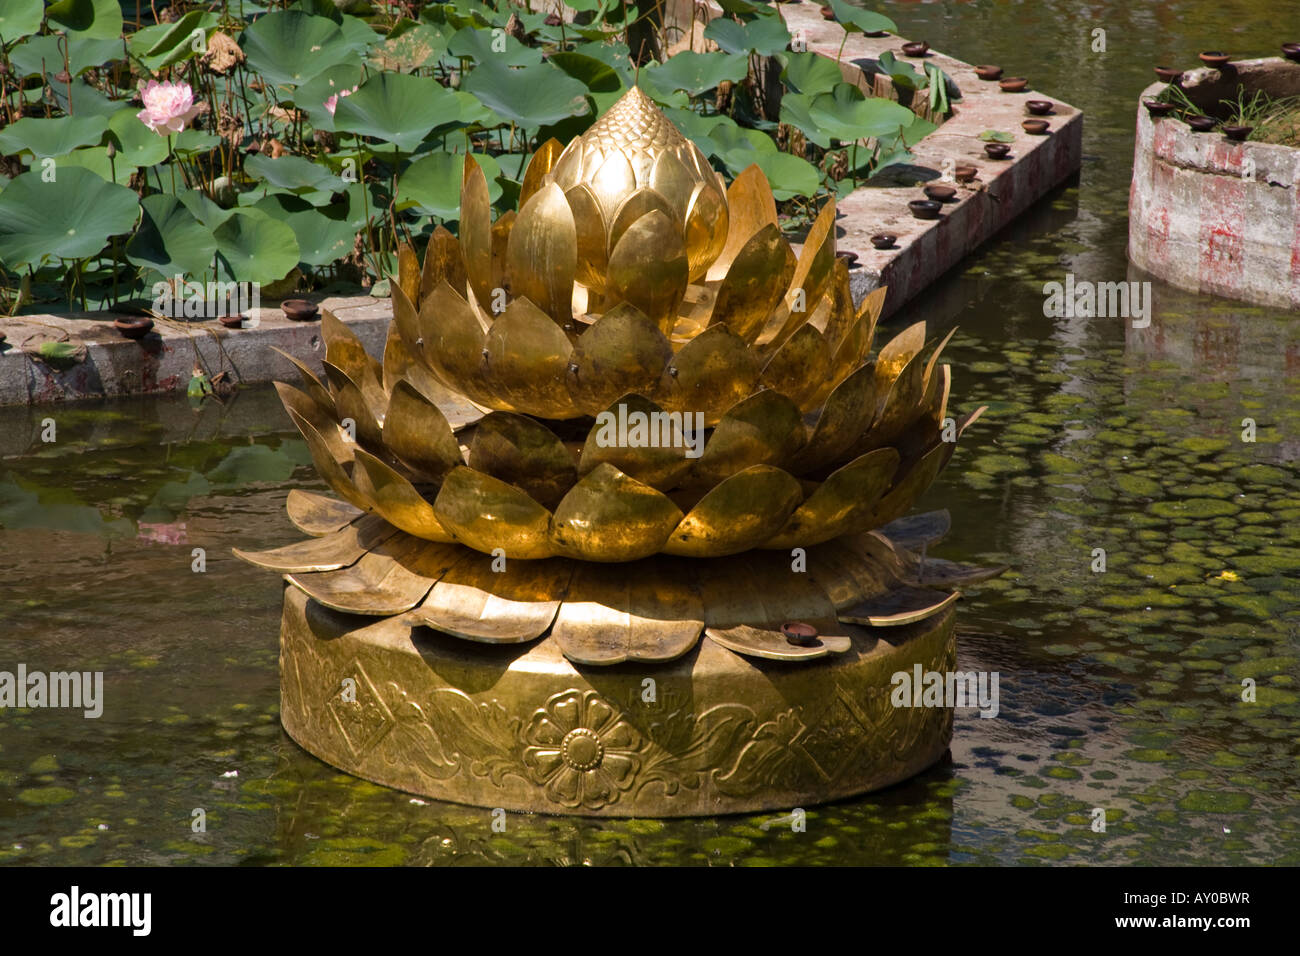 Large golden sculpture of a lotus flower in a pond meenakshi large golden sculpture of a lotus flower in a pond meenakshi temple madurai tamil nadu india dhlflorist Images